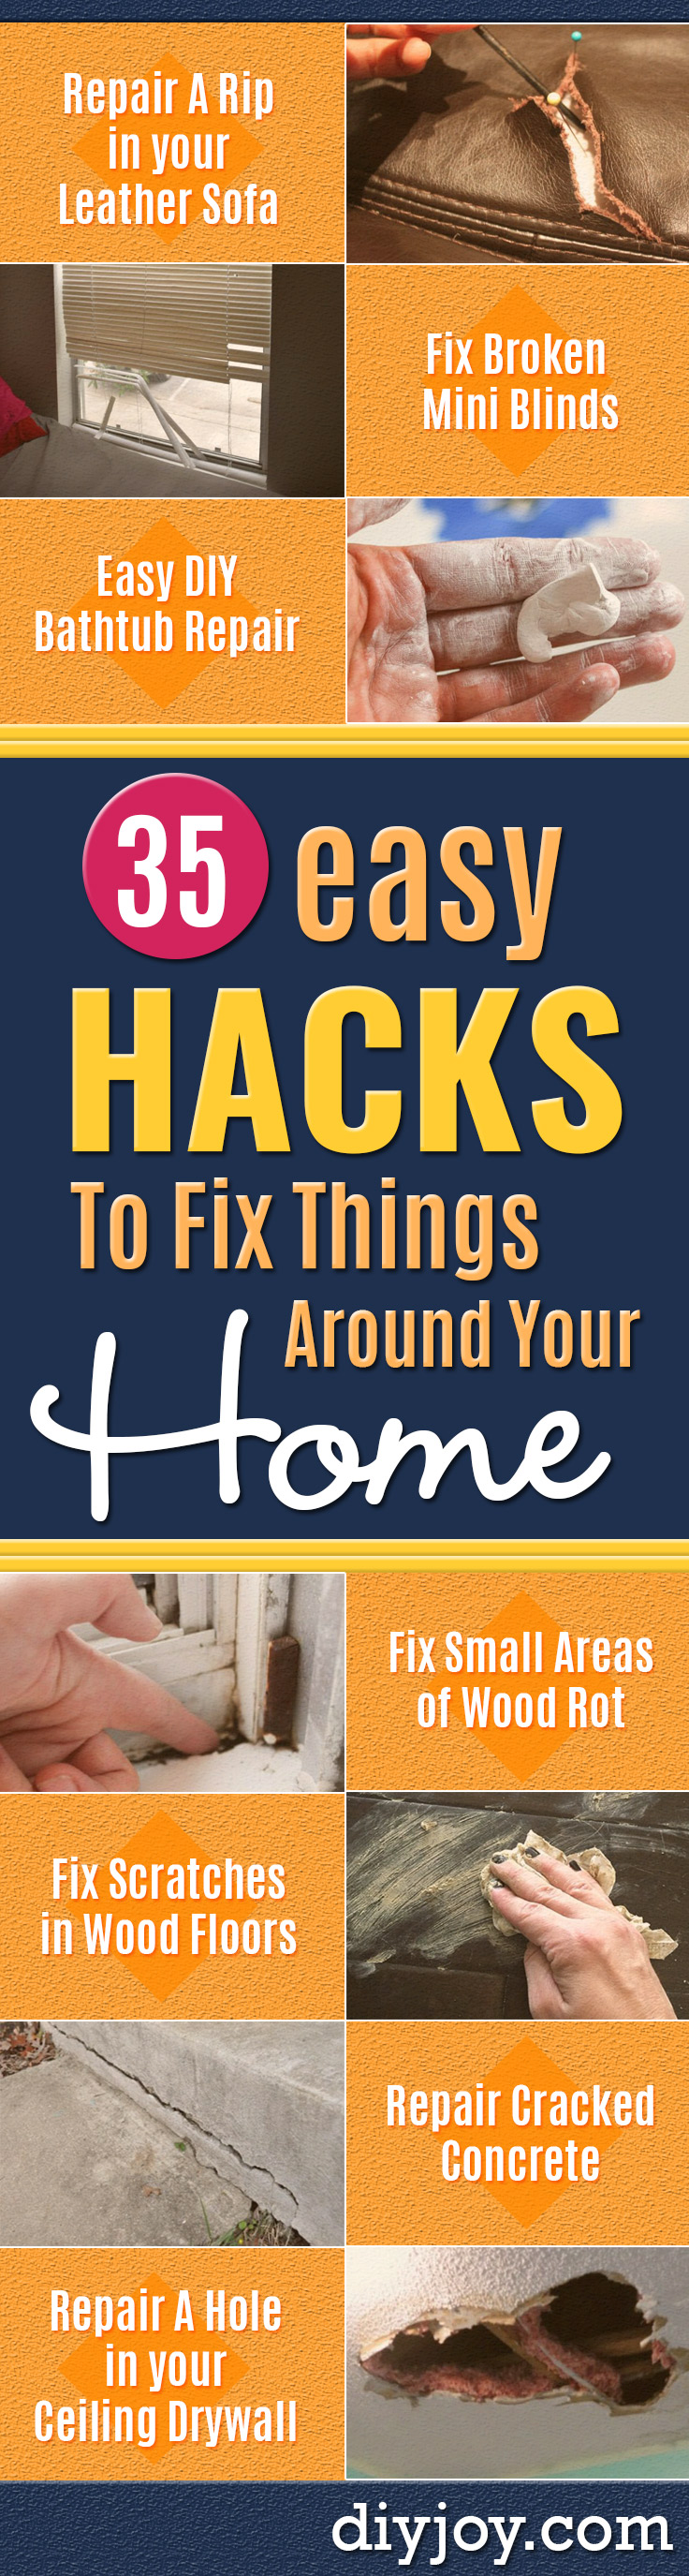 Easy Home Repair Hacks - Quick Ways to Easily Fix Broken Things Around The House - DIY Tricks for Home Improvement and Repairs - Simple Solutions for Kitchen, Bath, Garage and Yard - Caulk, Grout, Wall Repair and Wood Patching and Staining http://diyjoy.com/easy-home-repair-hacks